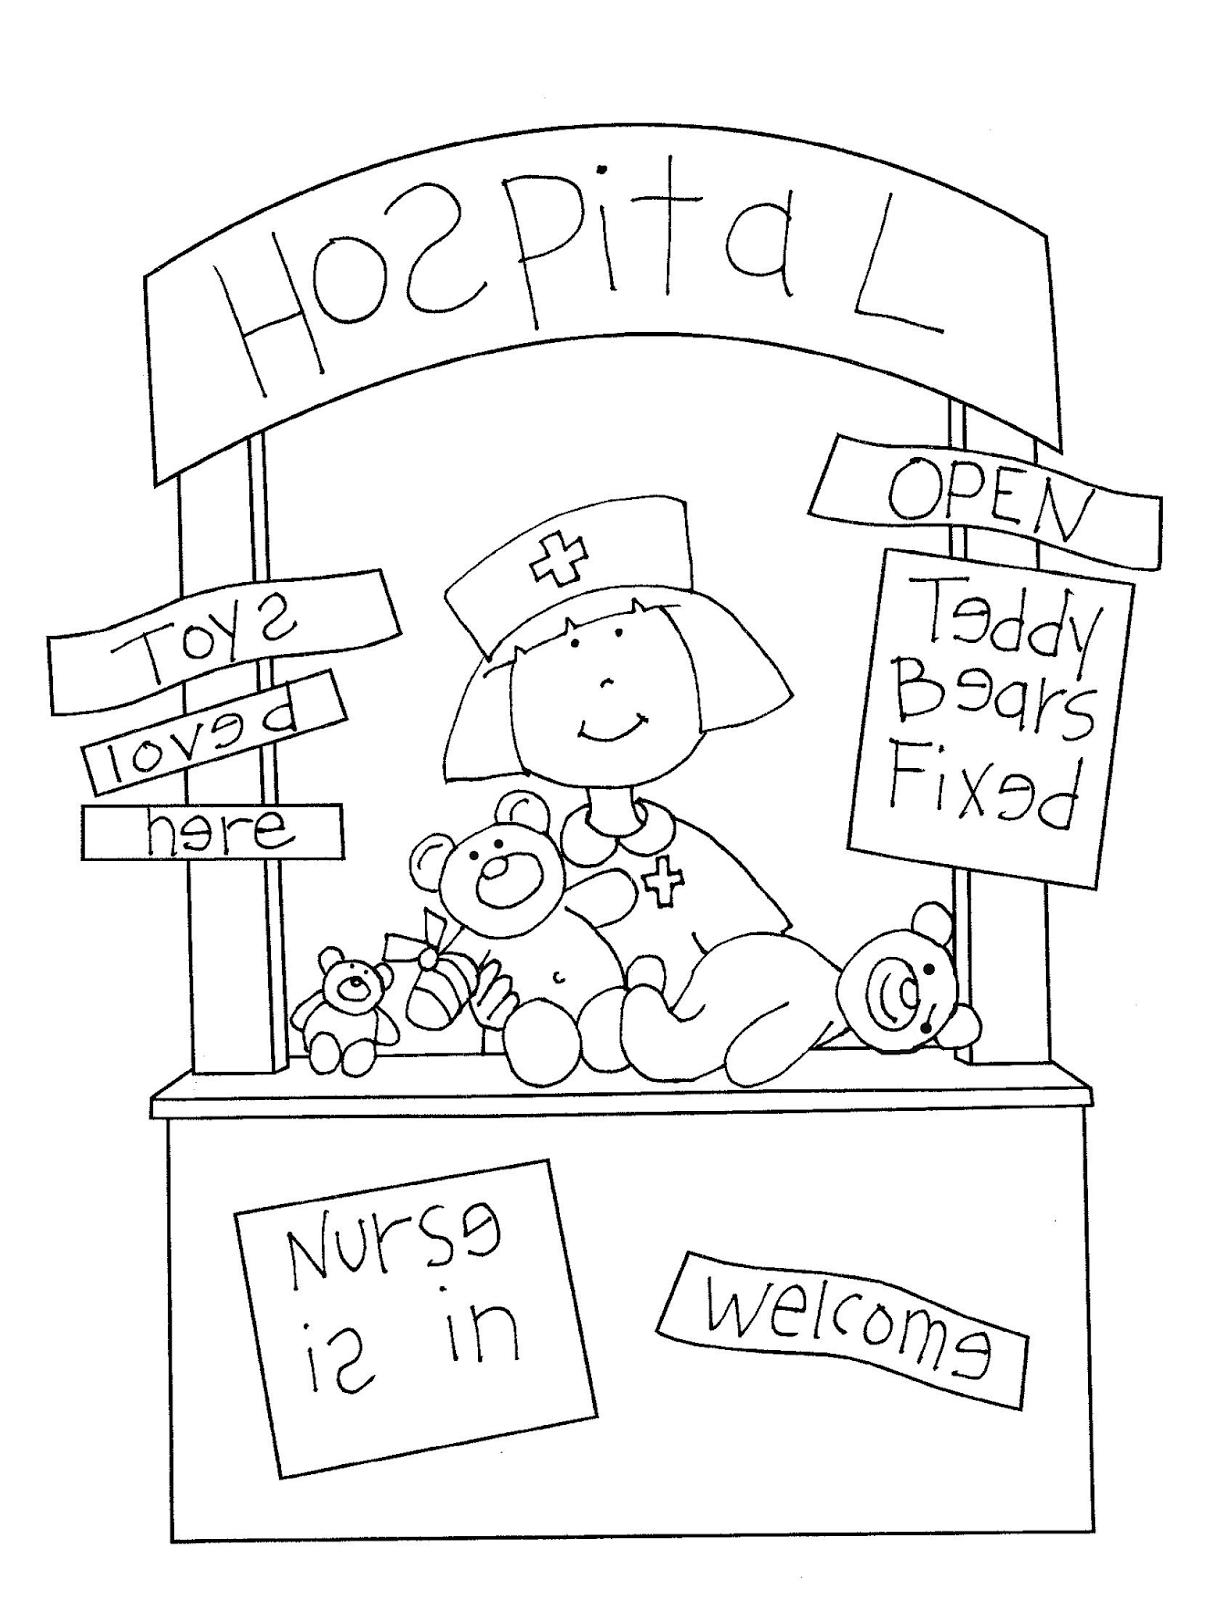 Hospital+for+Bears.png (1213×1600) | All coloring images | Pinterest